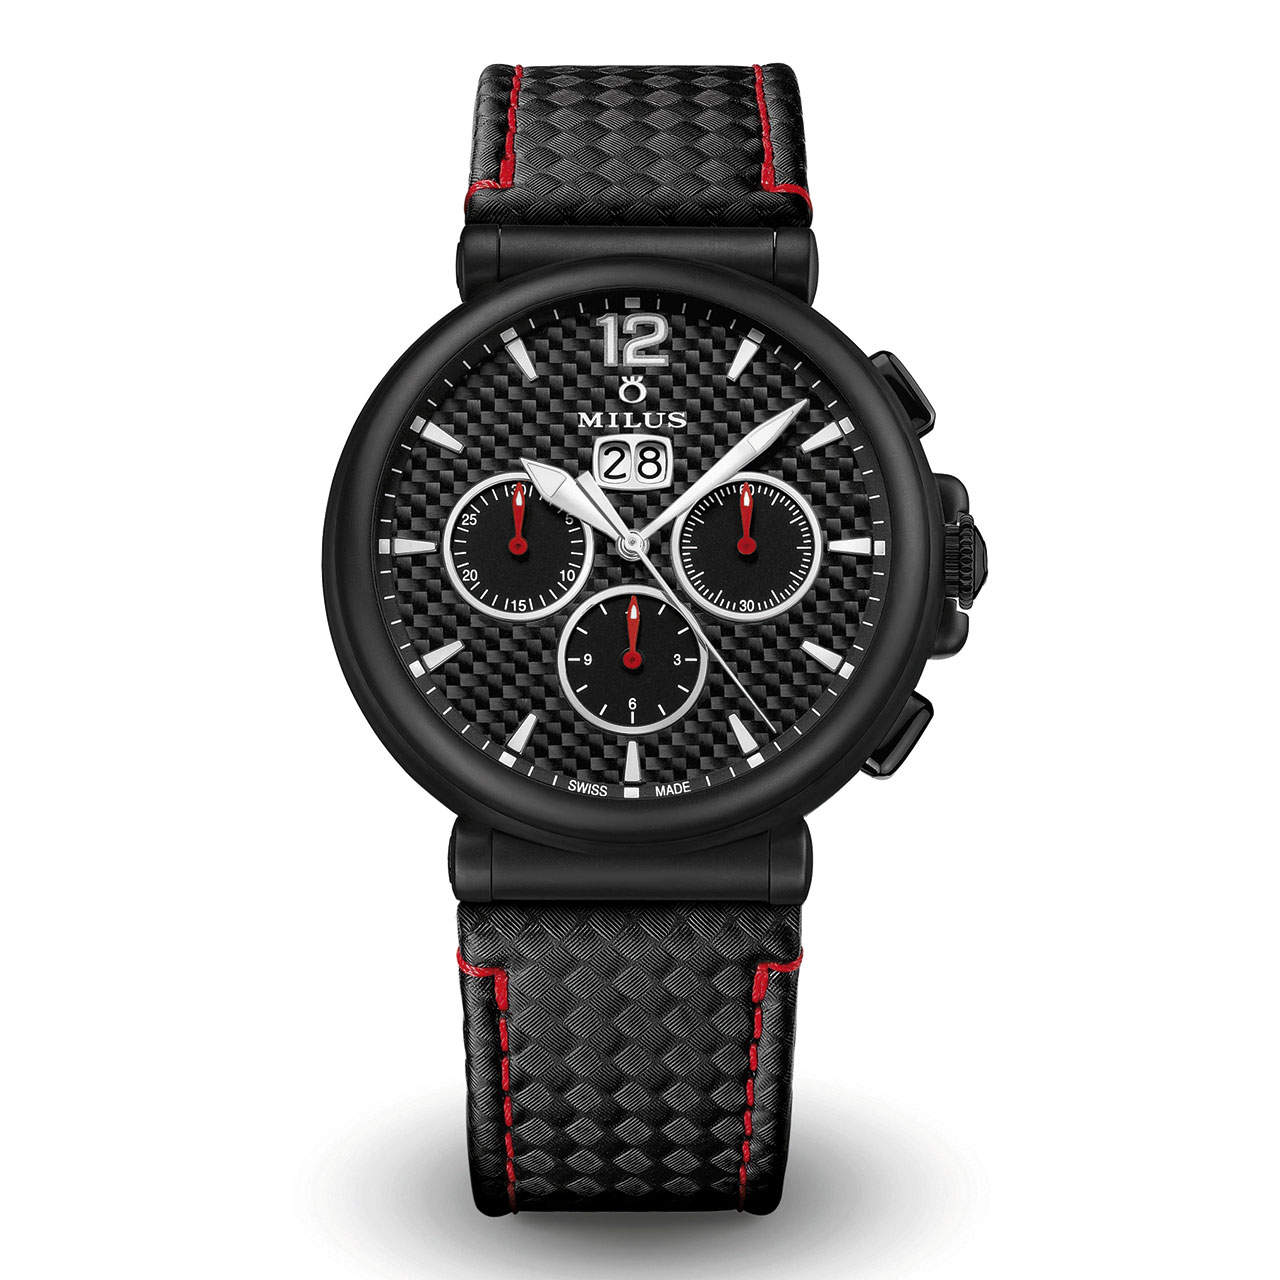 Milus Zetios Chronograph Automatic Watch